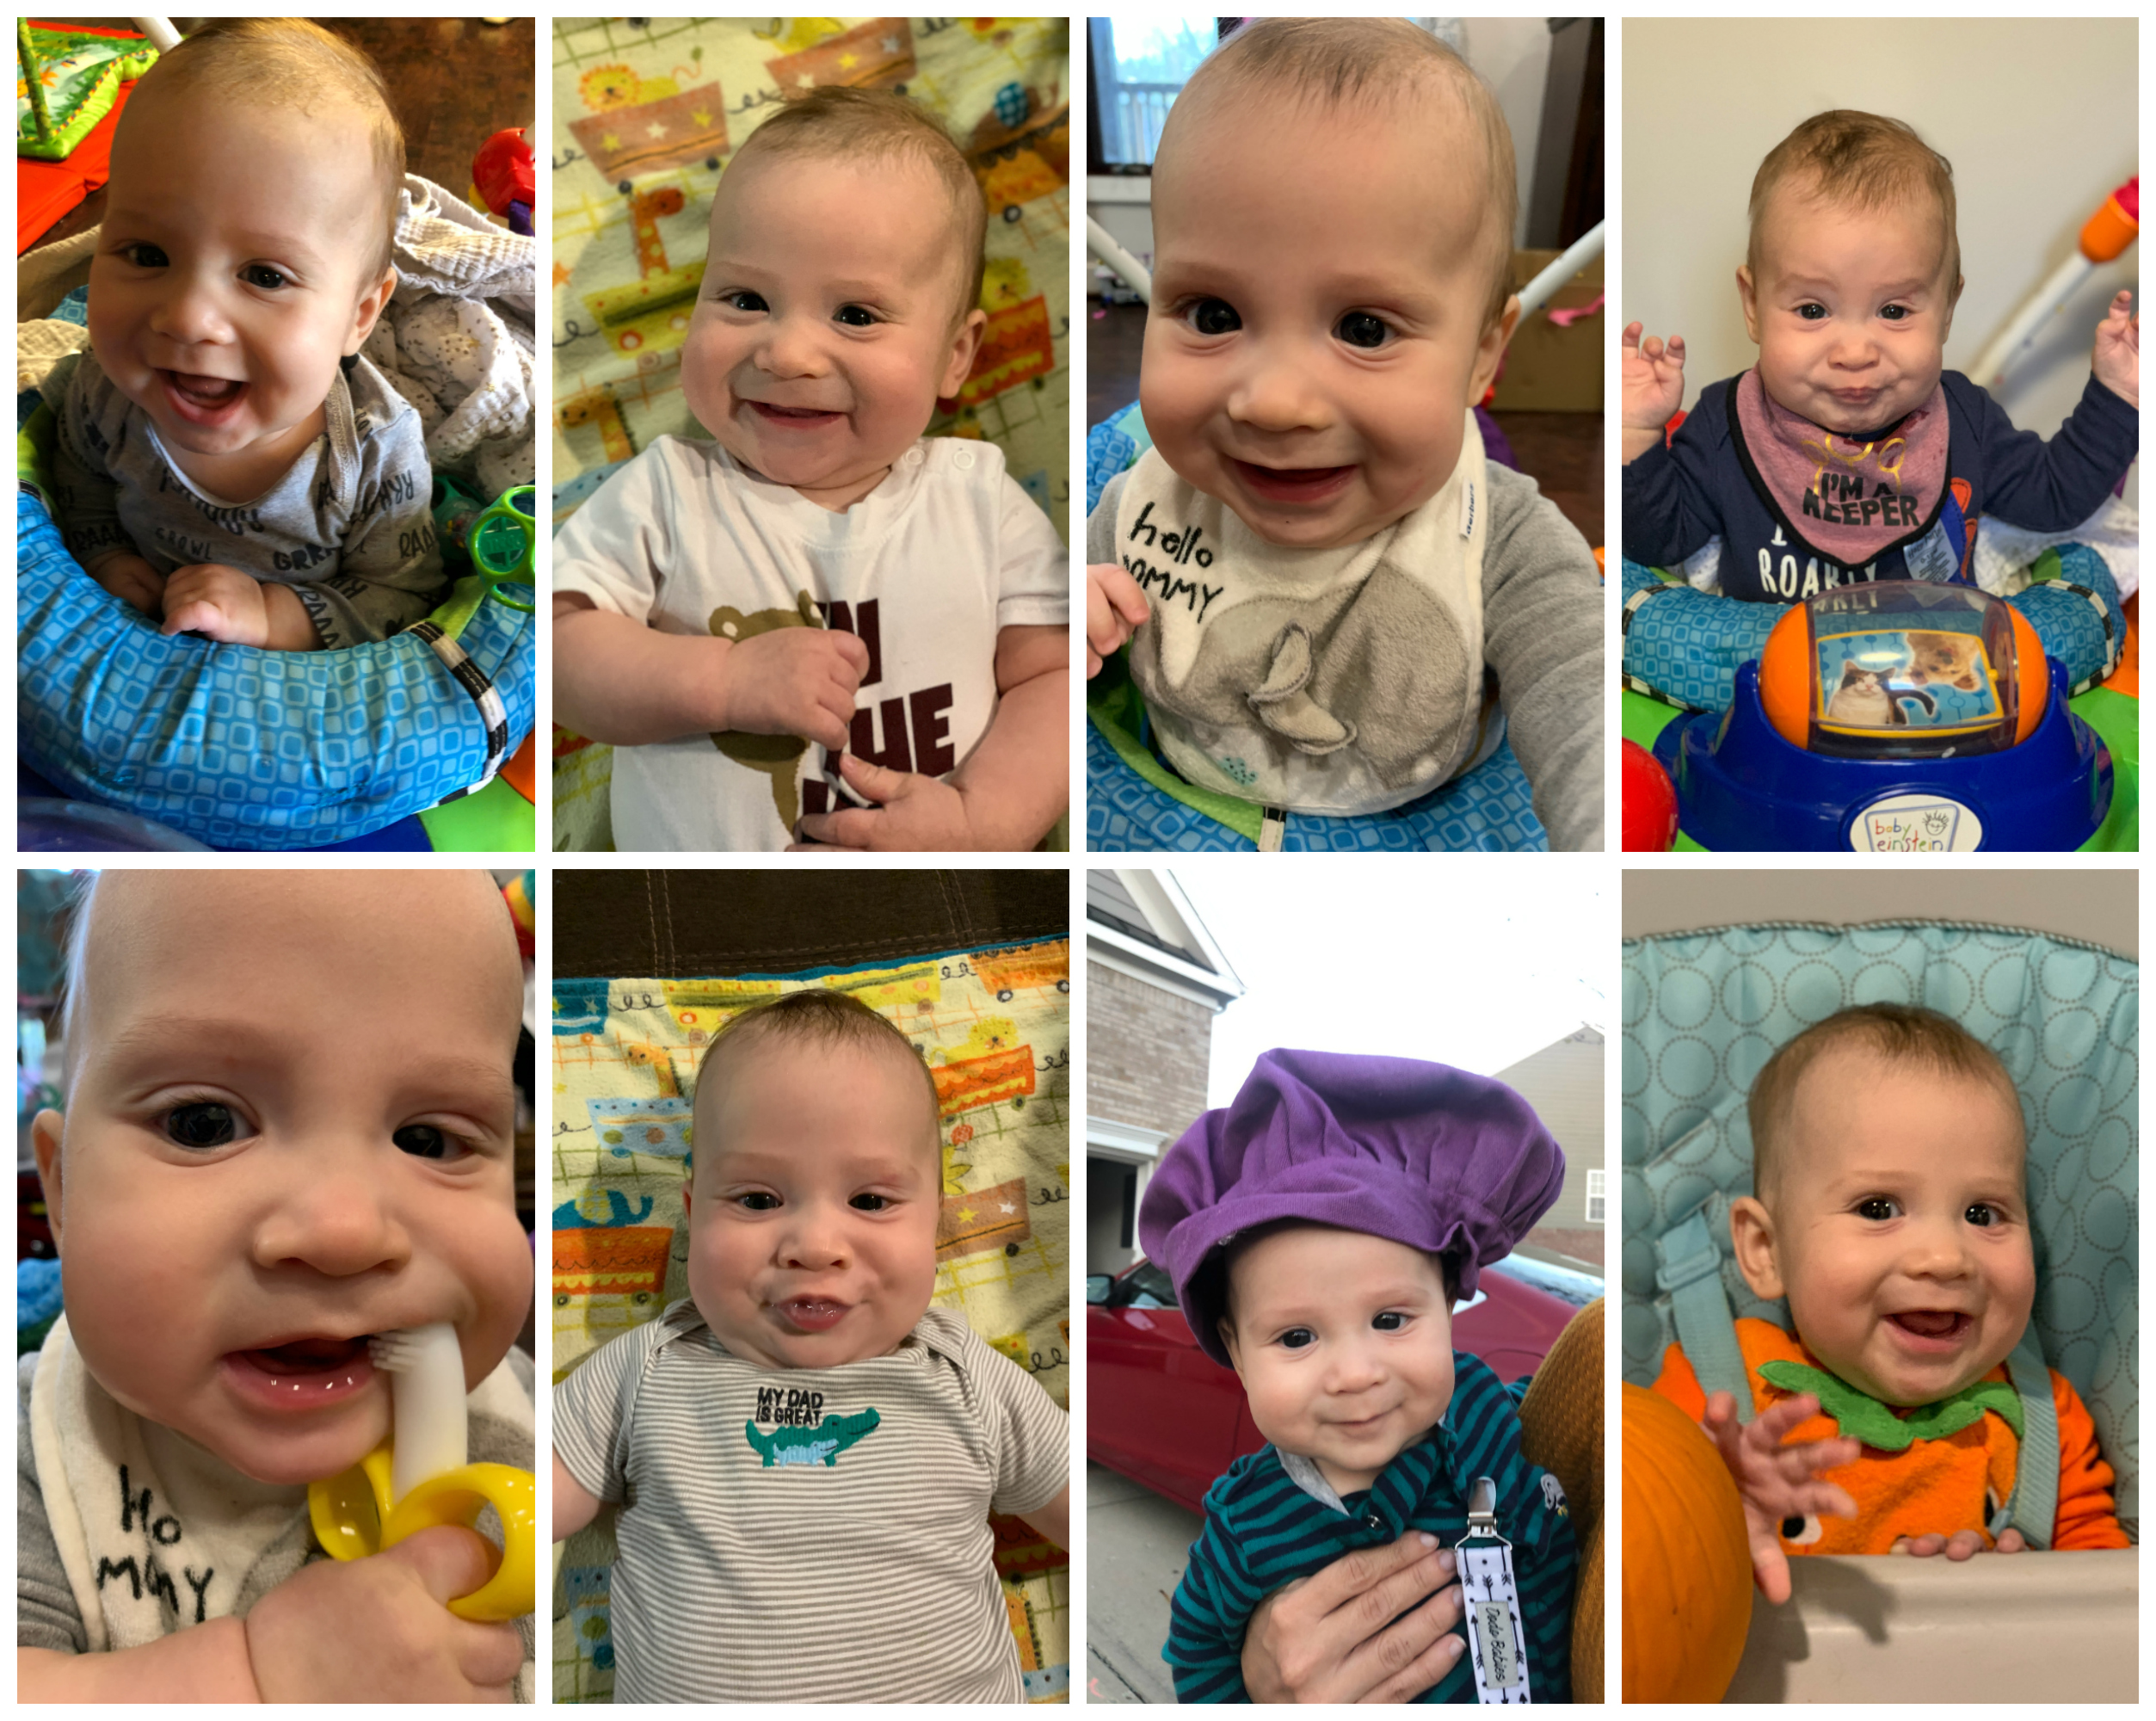 Brody-5months-faces